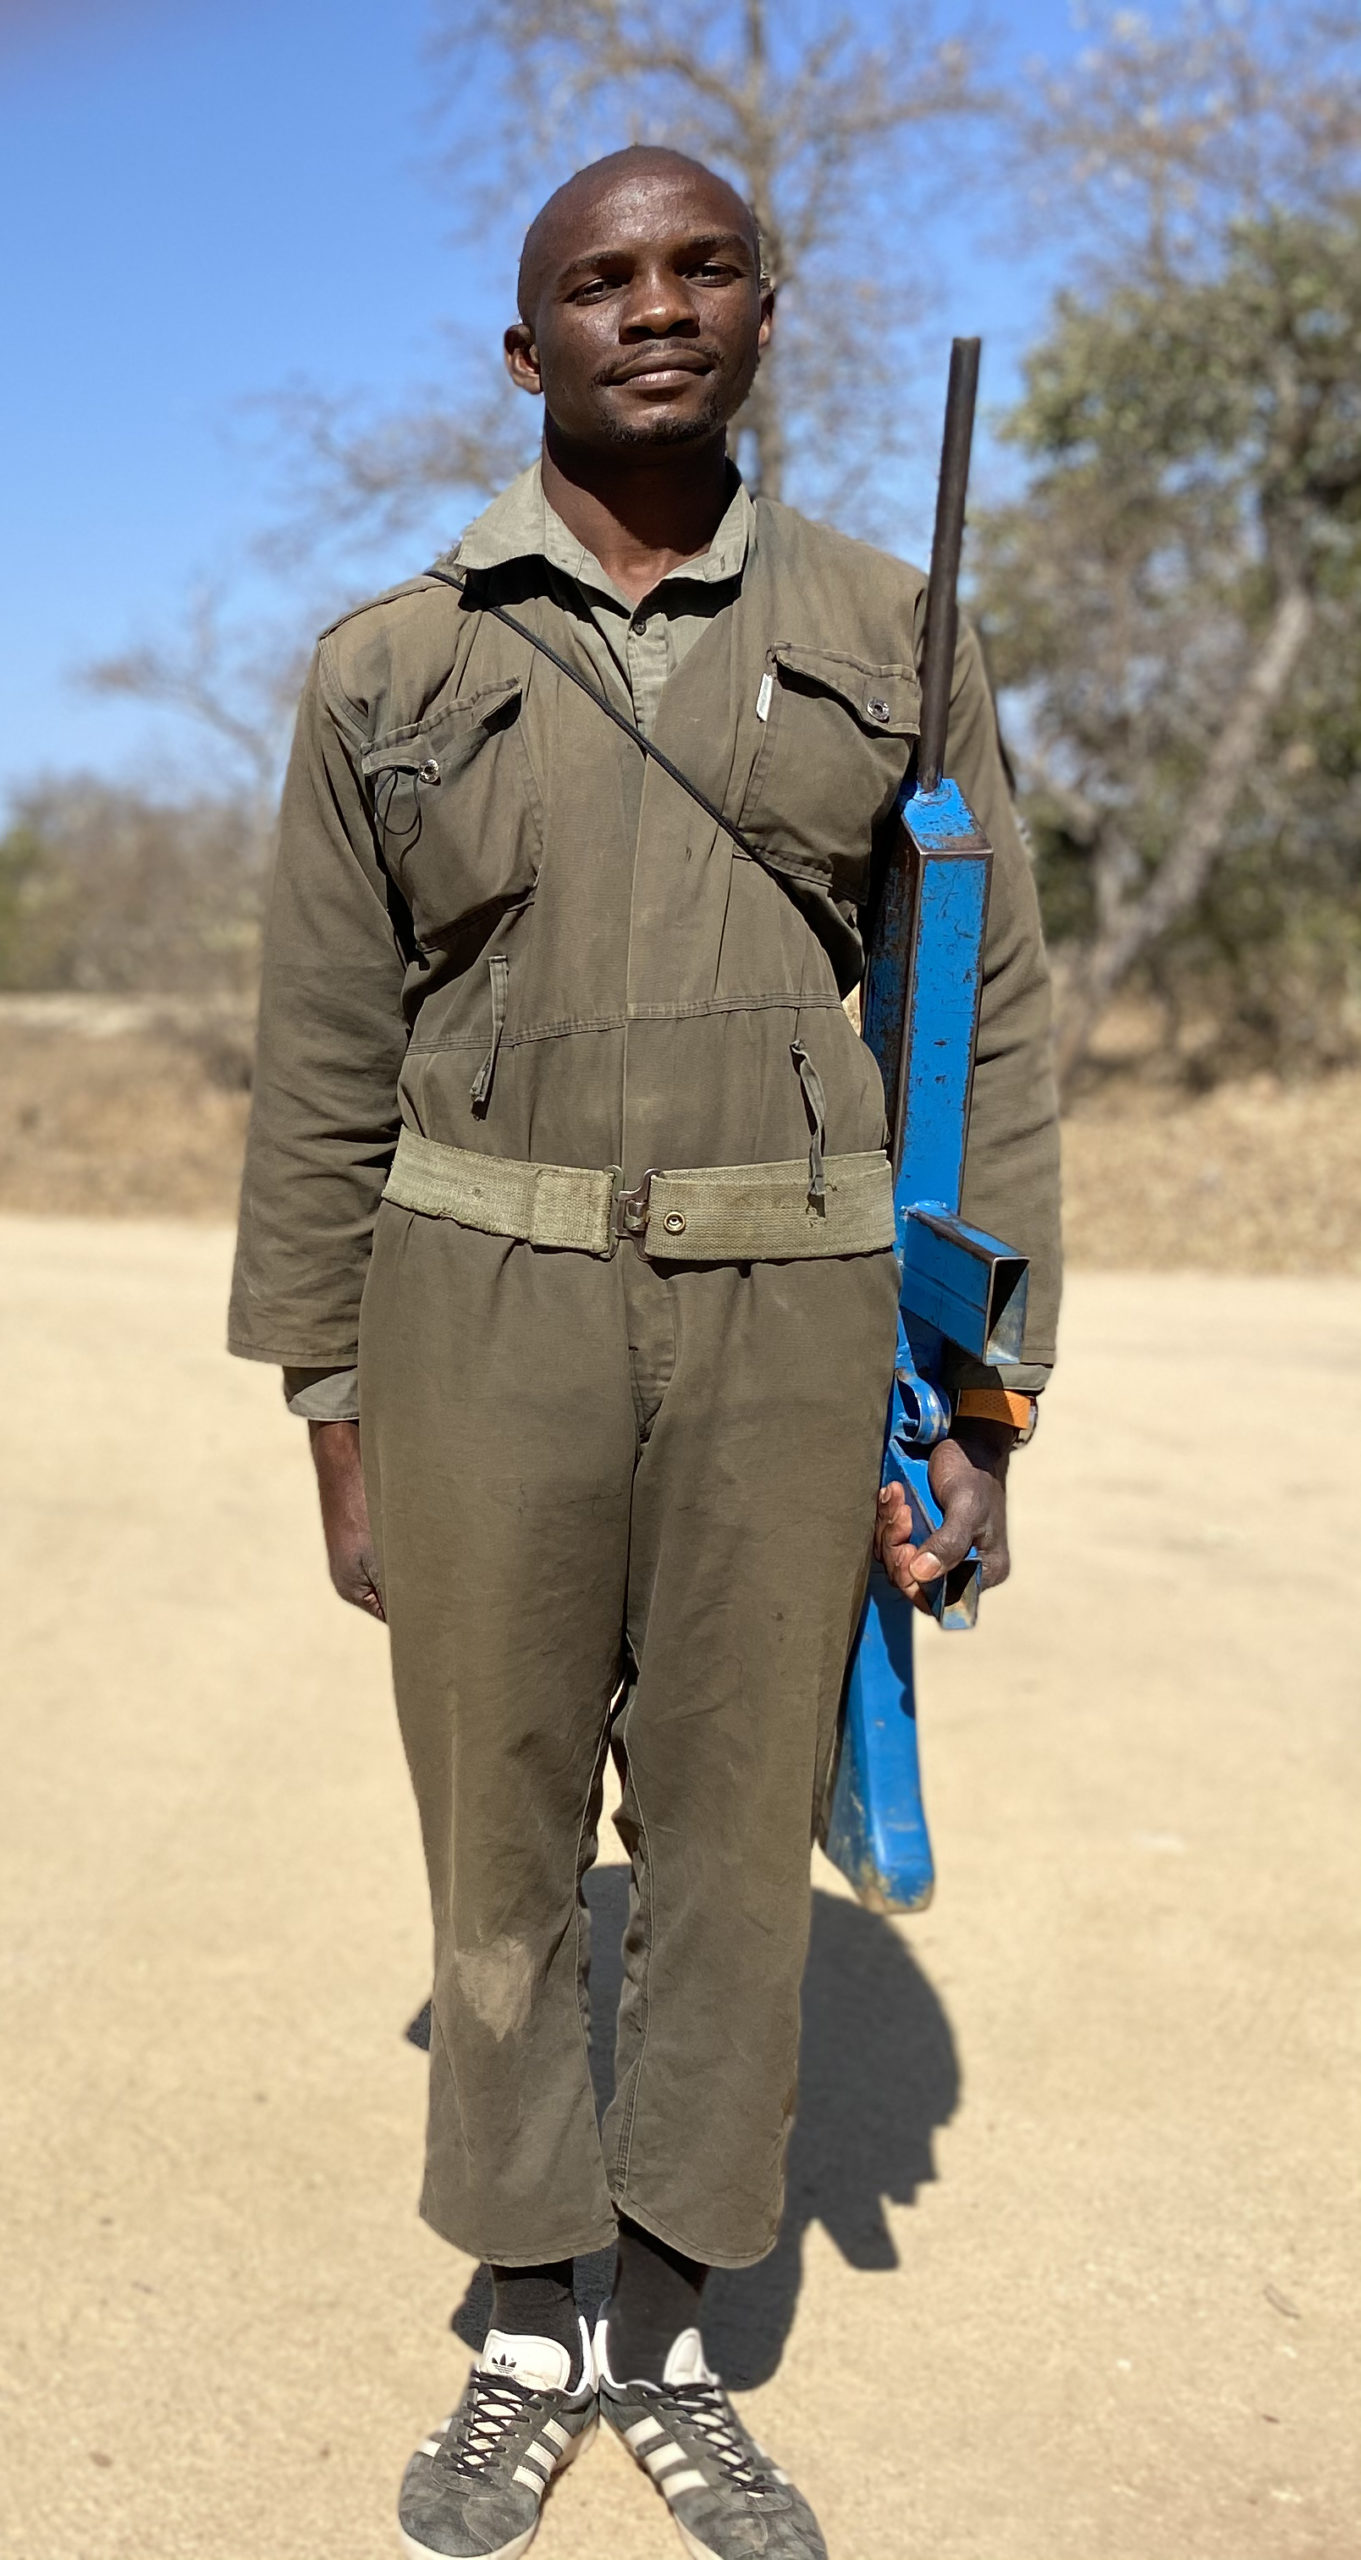 Becoming a Ranger: Donald Rakgwale shares his story